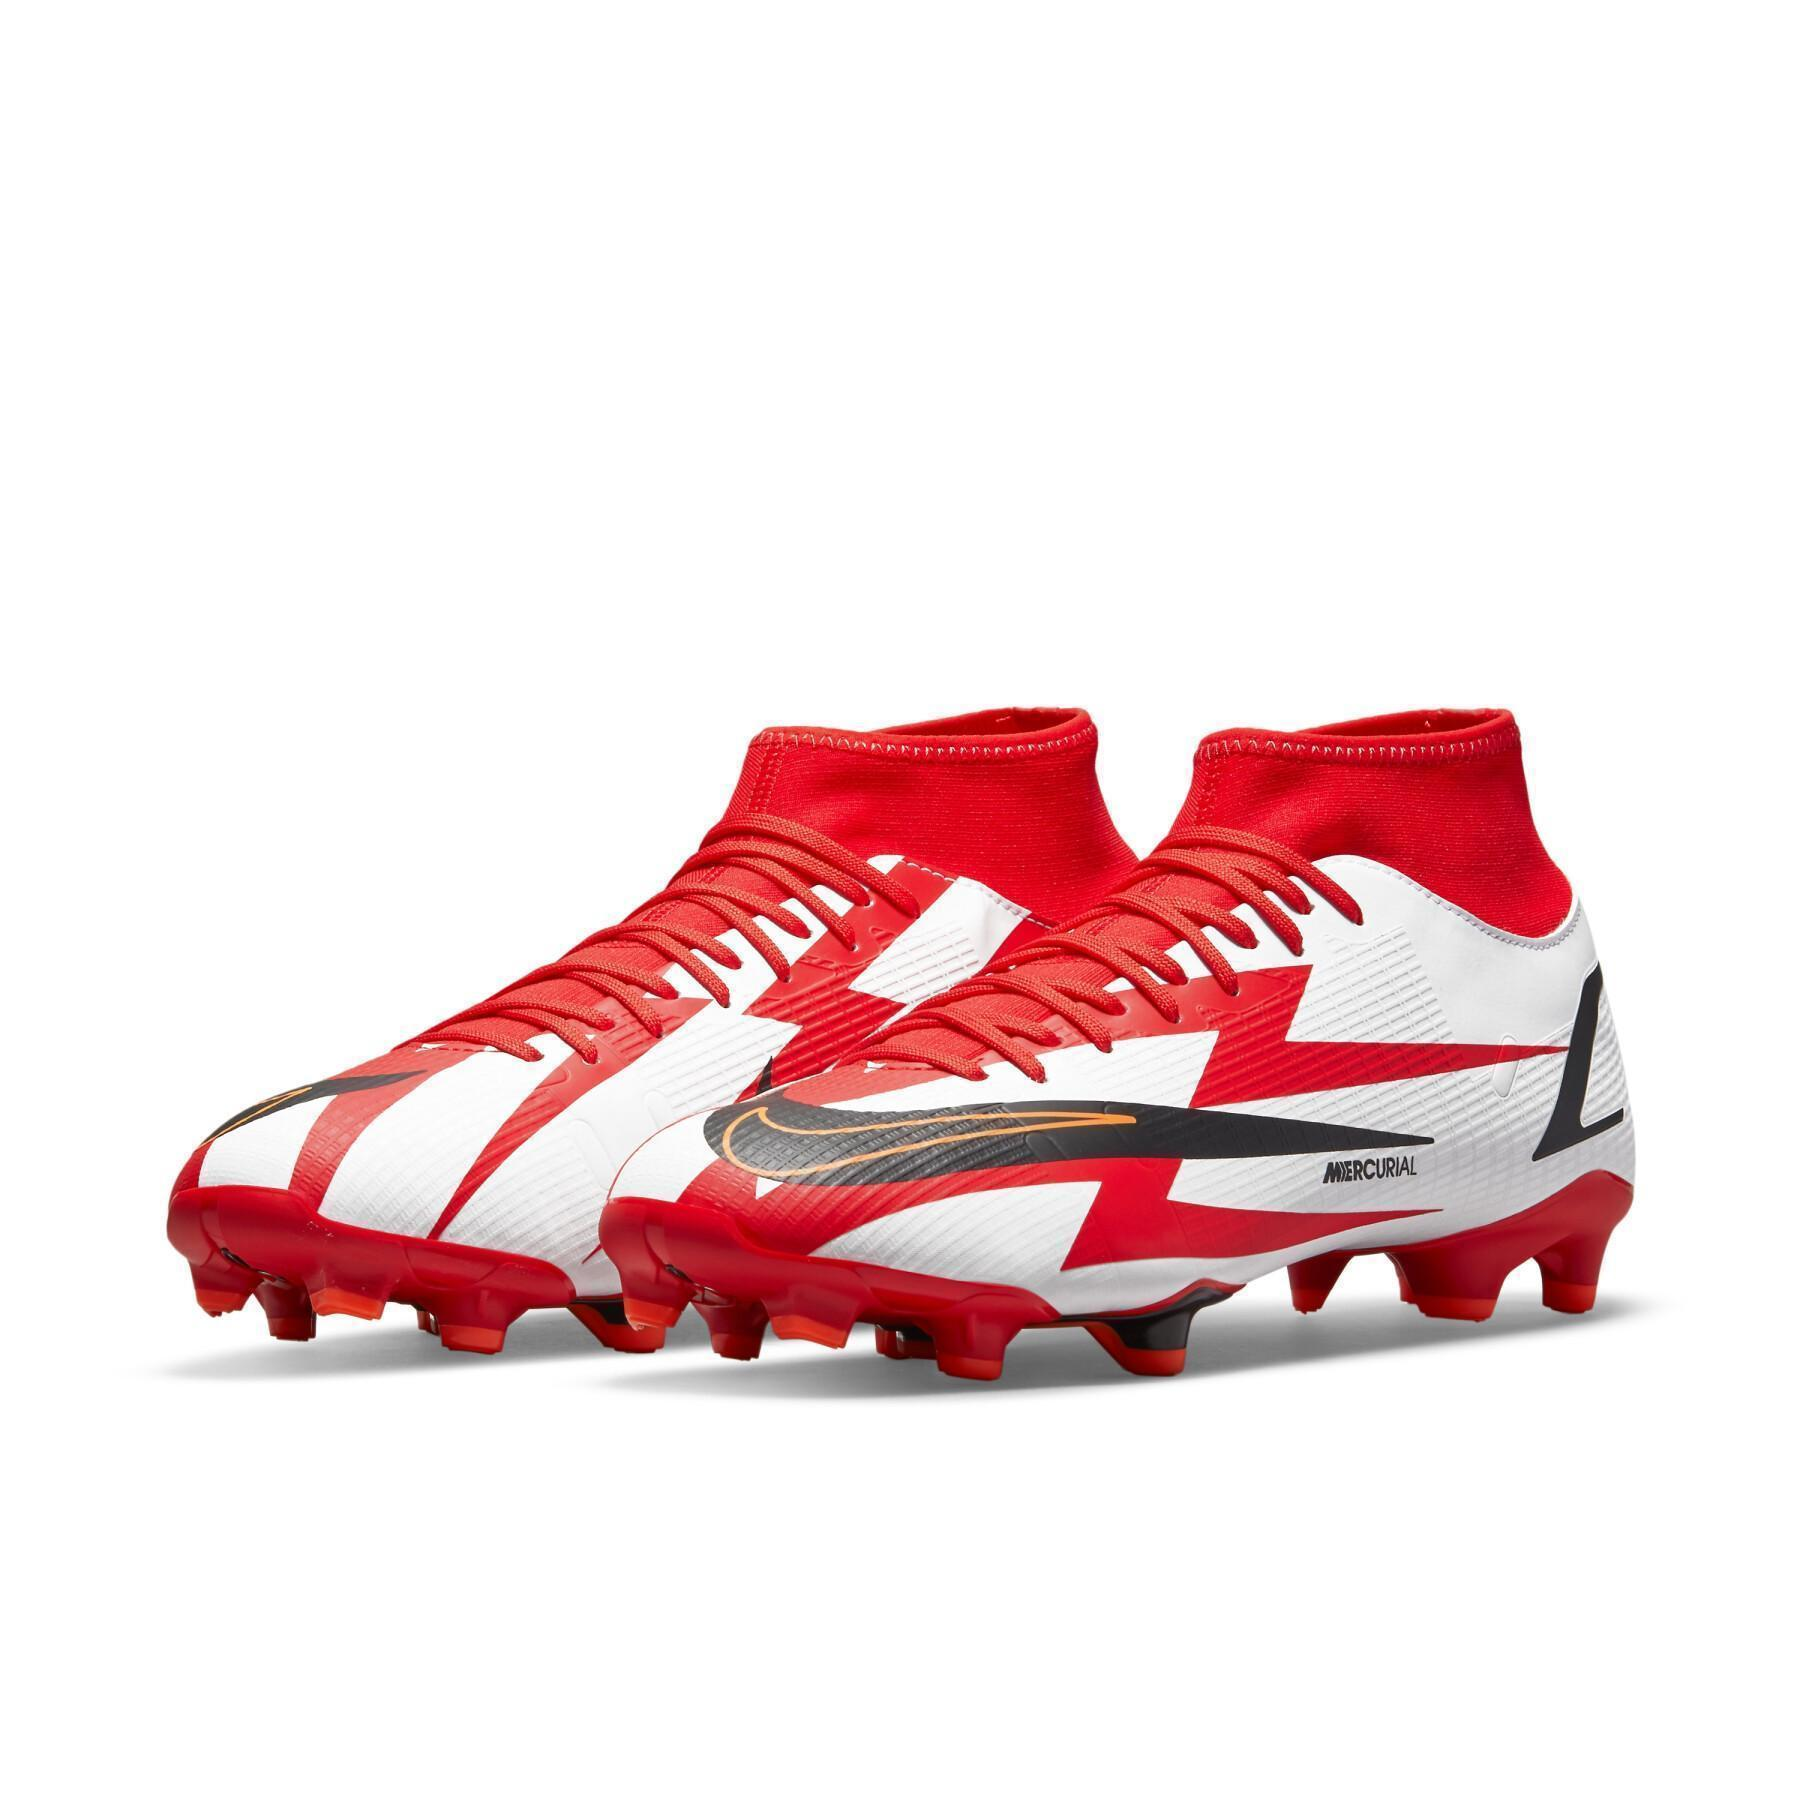 Chaussures Nike Mercurial Superfly 8 Academy CR7 MG